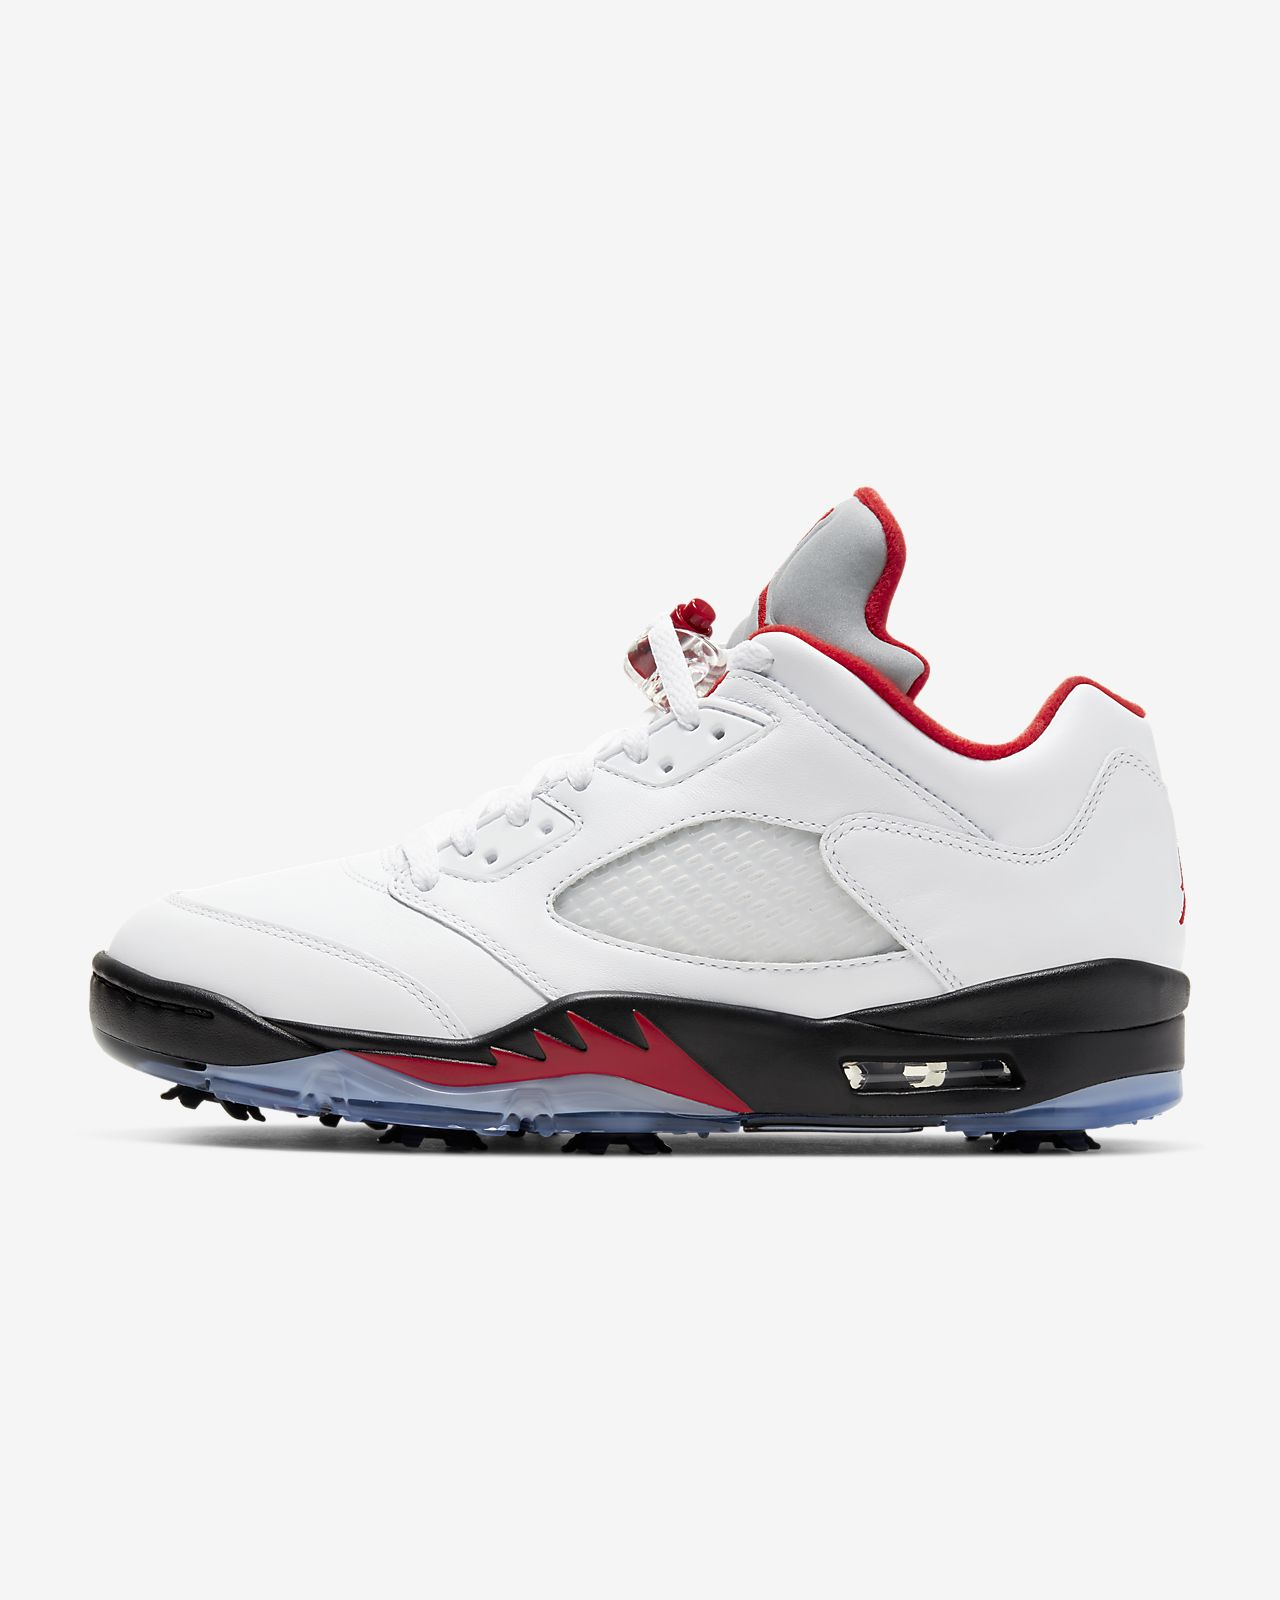 Air Jordan V Low Golf Ayakkabısı